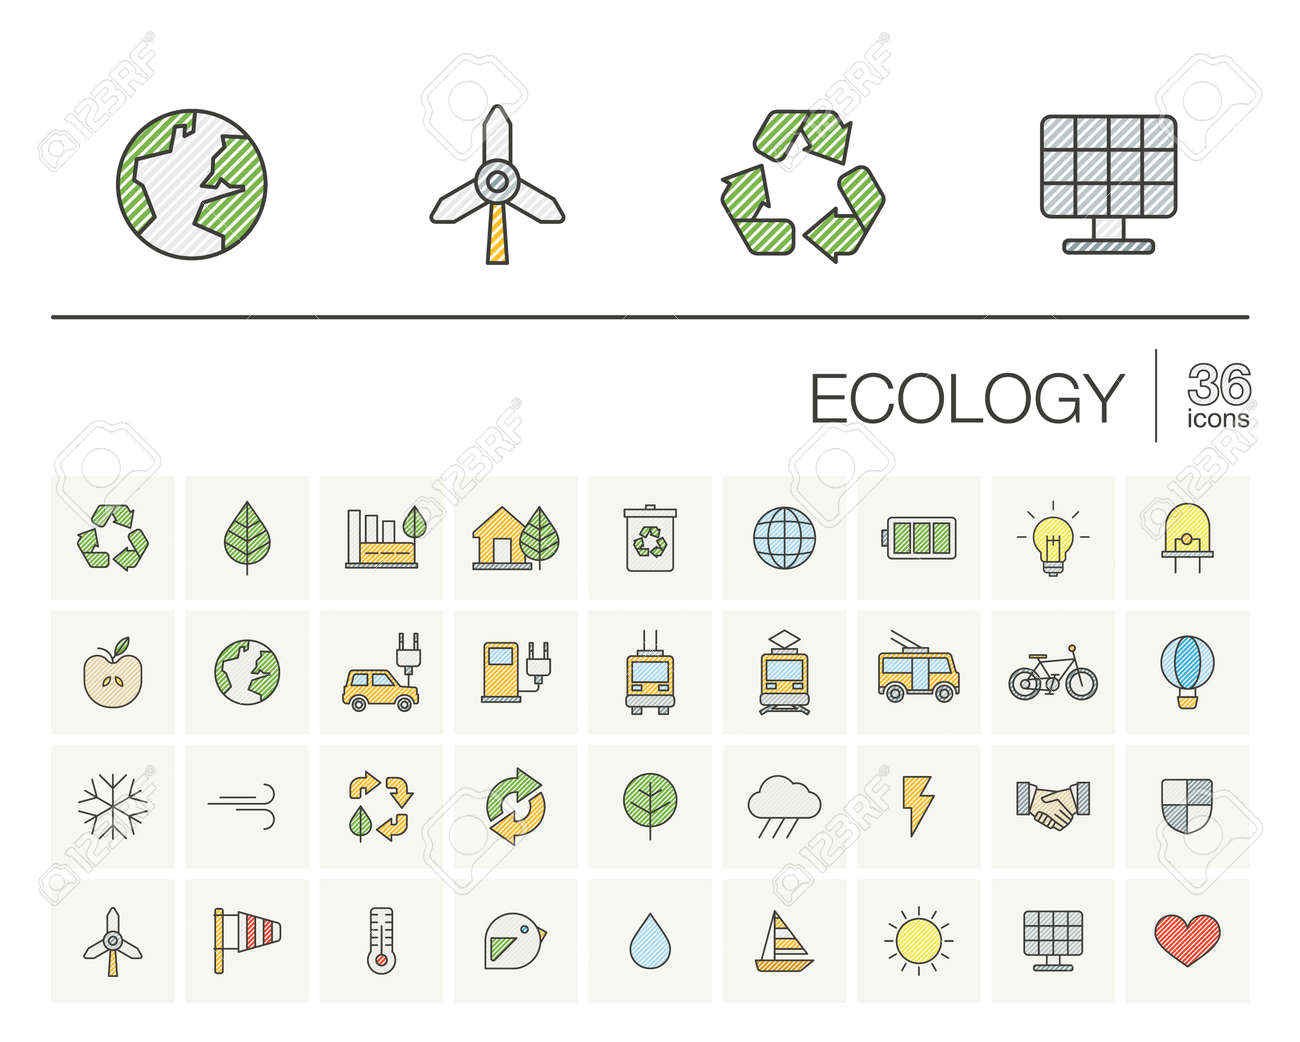 thin line icons set and graphic design elements. Illustration with ecology outline symbols. Eco, bio, environmental, alternative, recycle, wind power color pictogram. - 53668065